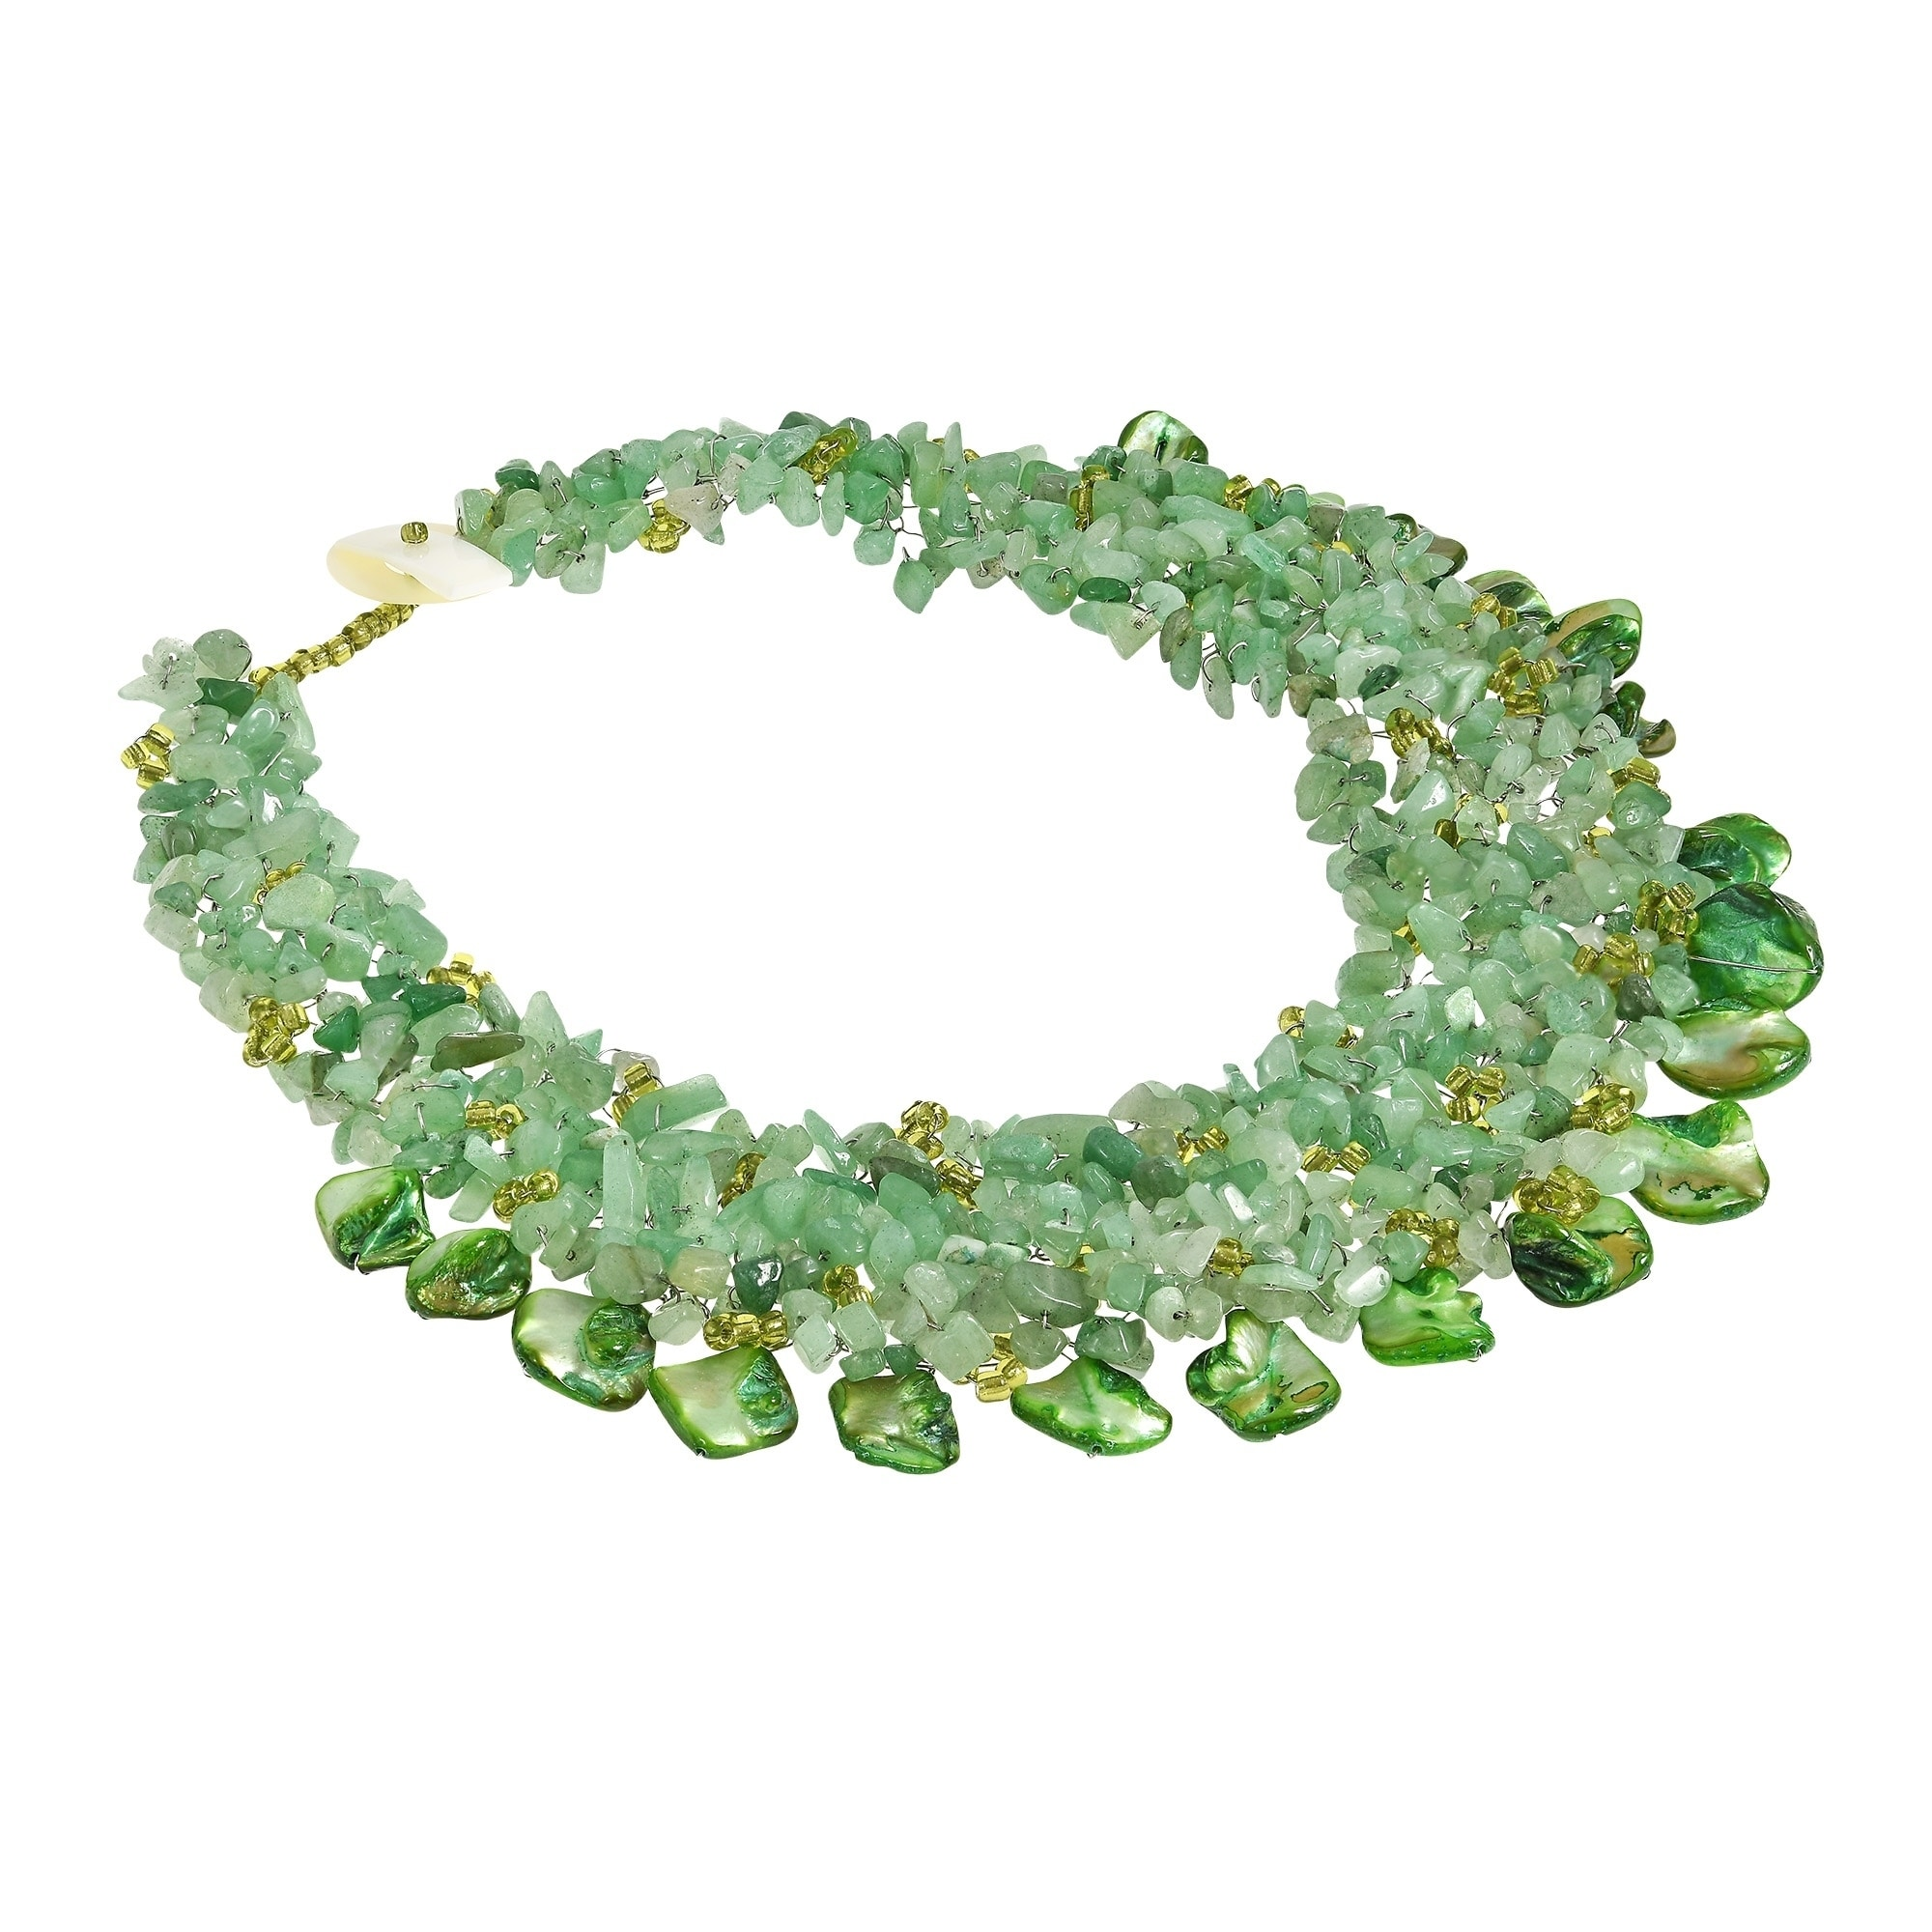 healing green bracelet jewelry quartz stone jade and pin